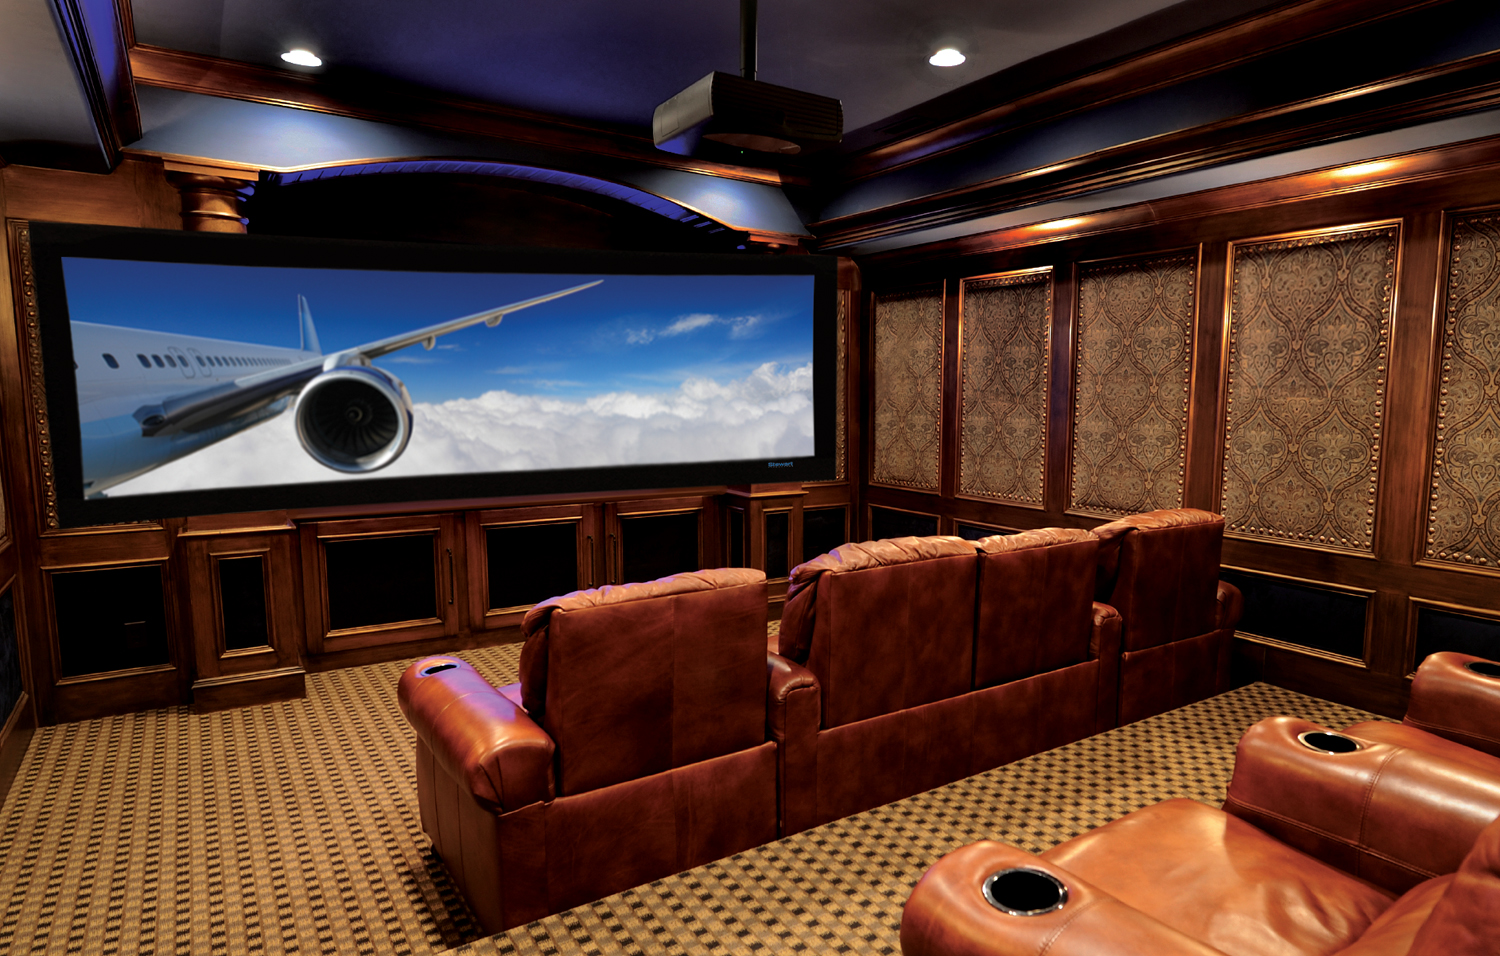 Home Theater Room How To Create The Ultimate Home Theater Room 50 Plus Finance